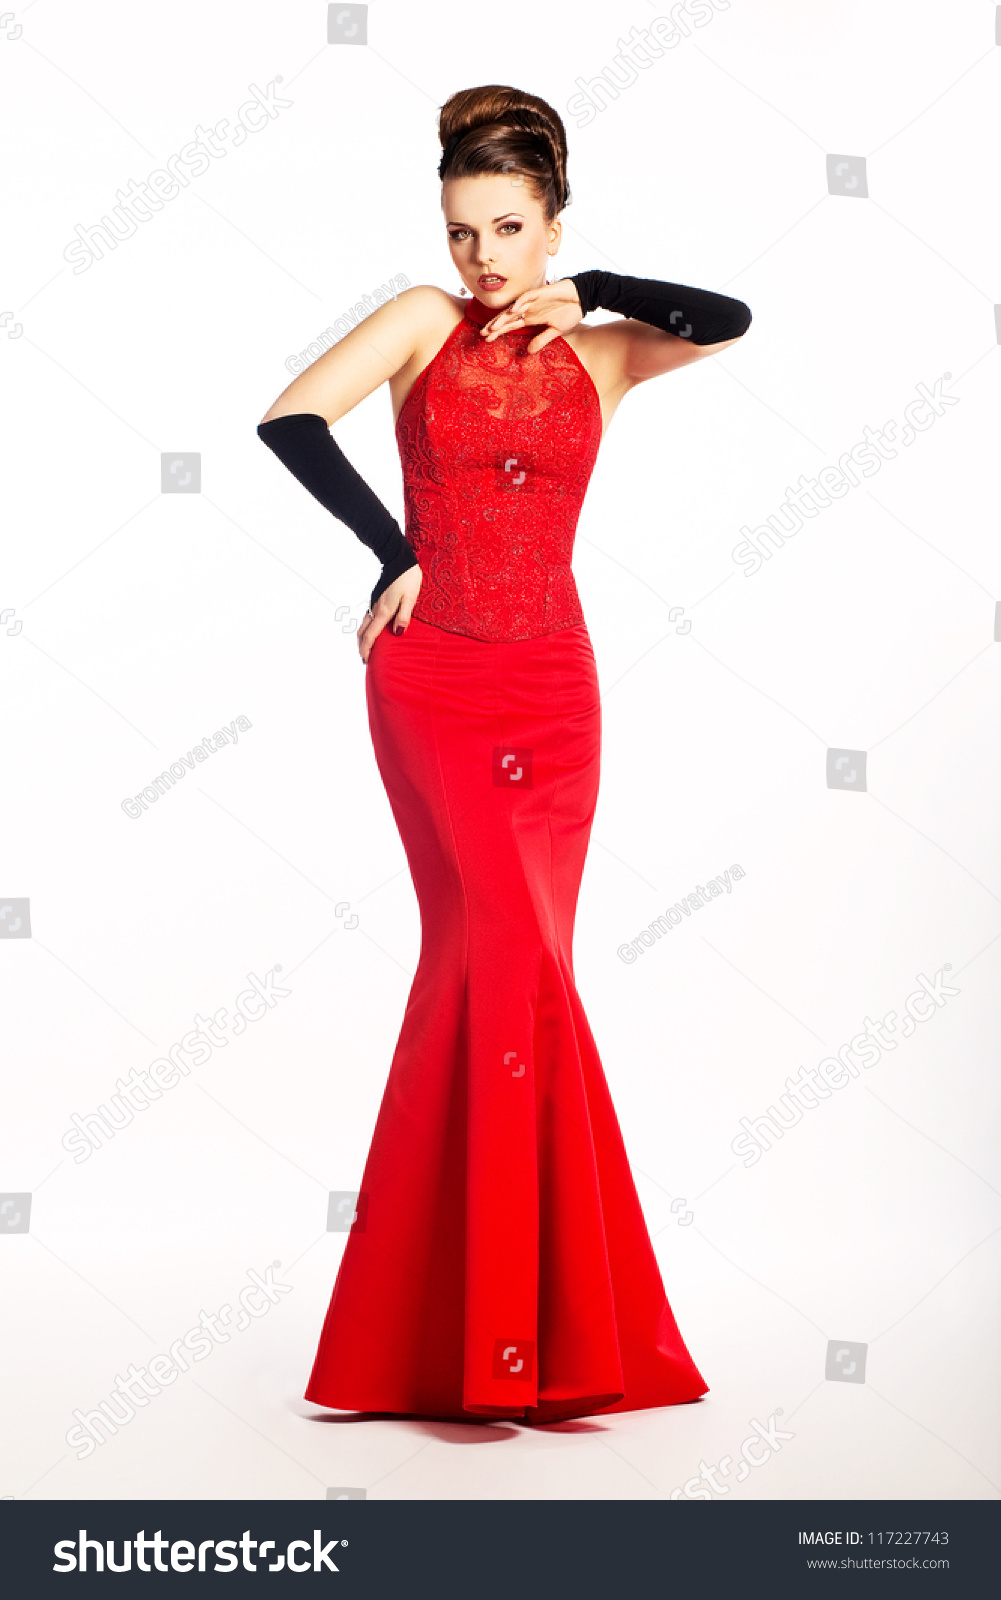 Black gloves for gown - Beauty Newlywed In Long Wedding Red Dress And Black Bridal Gloves Posing